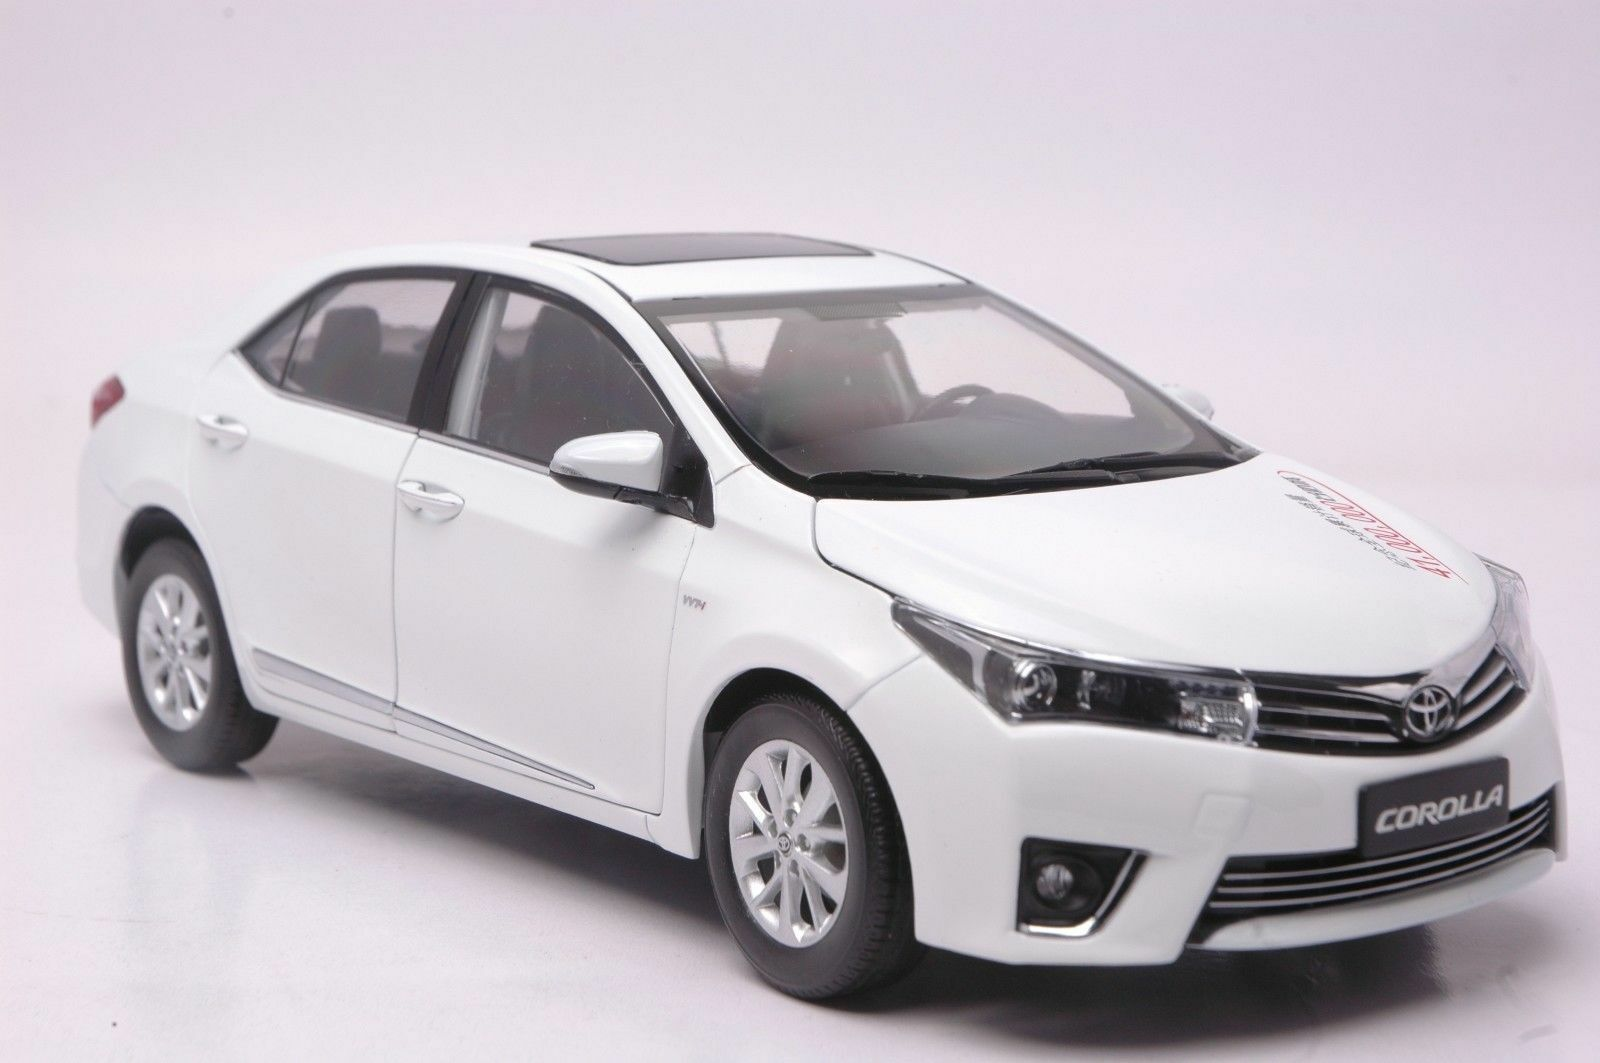 toyota corolla 2014 car model in scale 1 18 white cad picclick ca. Black Bedroom Furniture Sets. Home Design Ideas